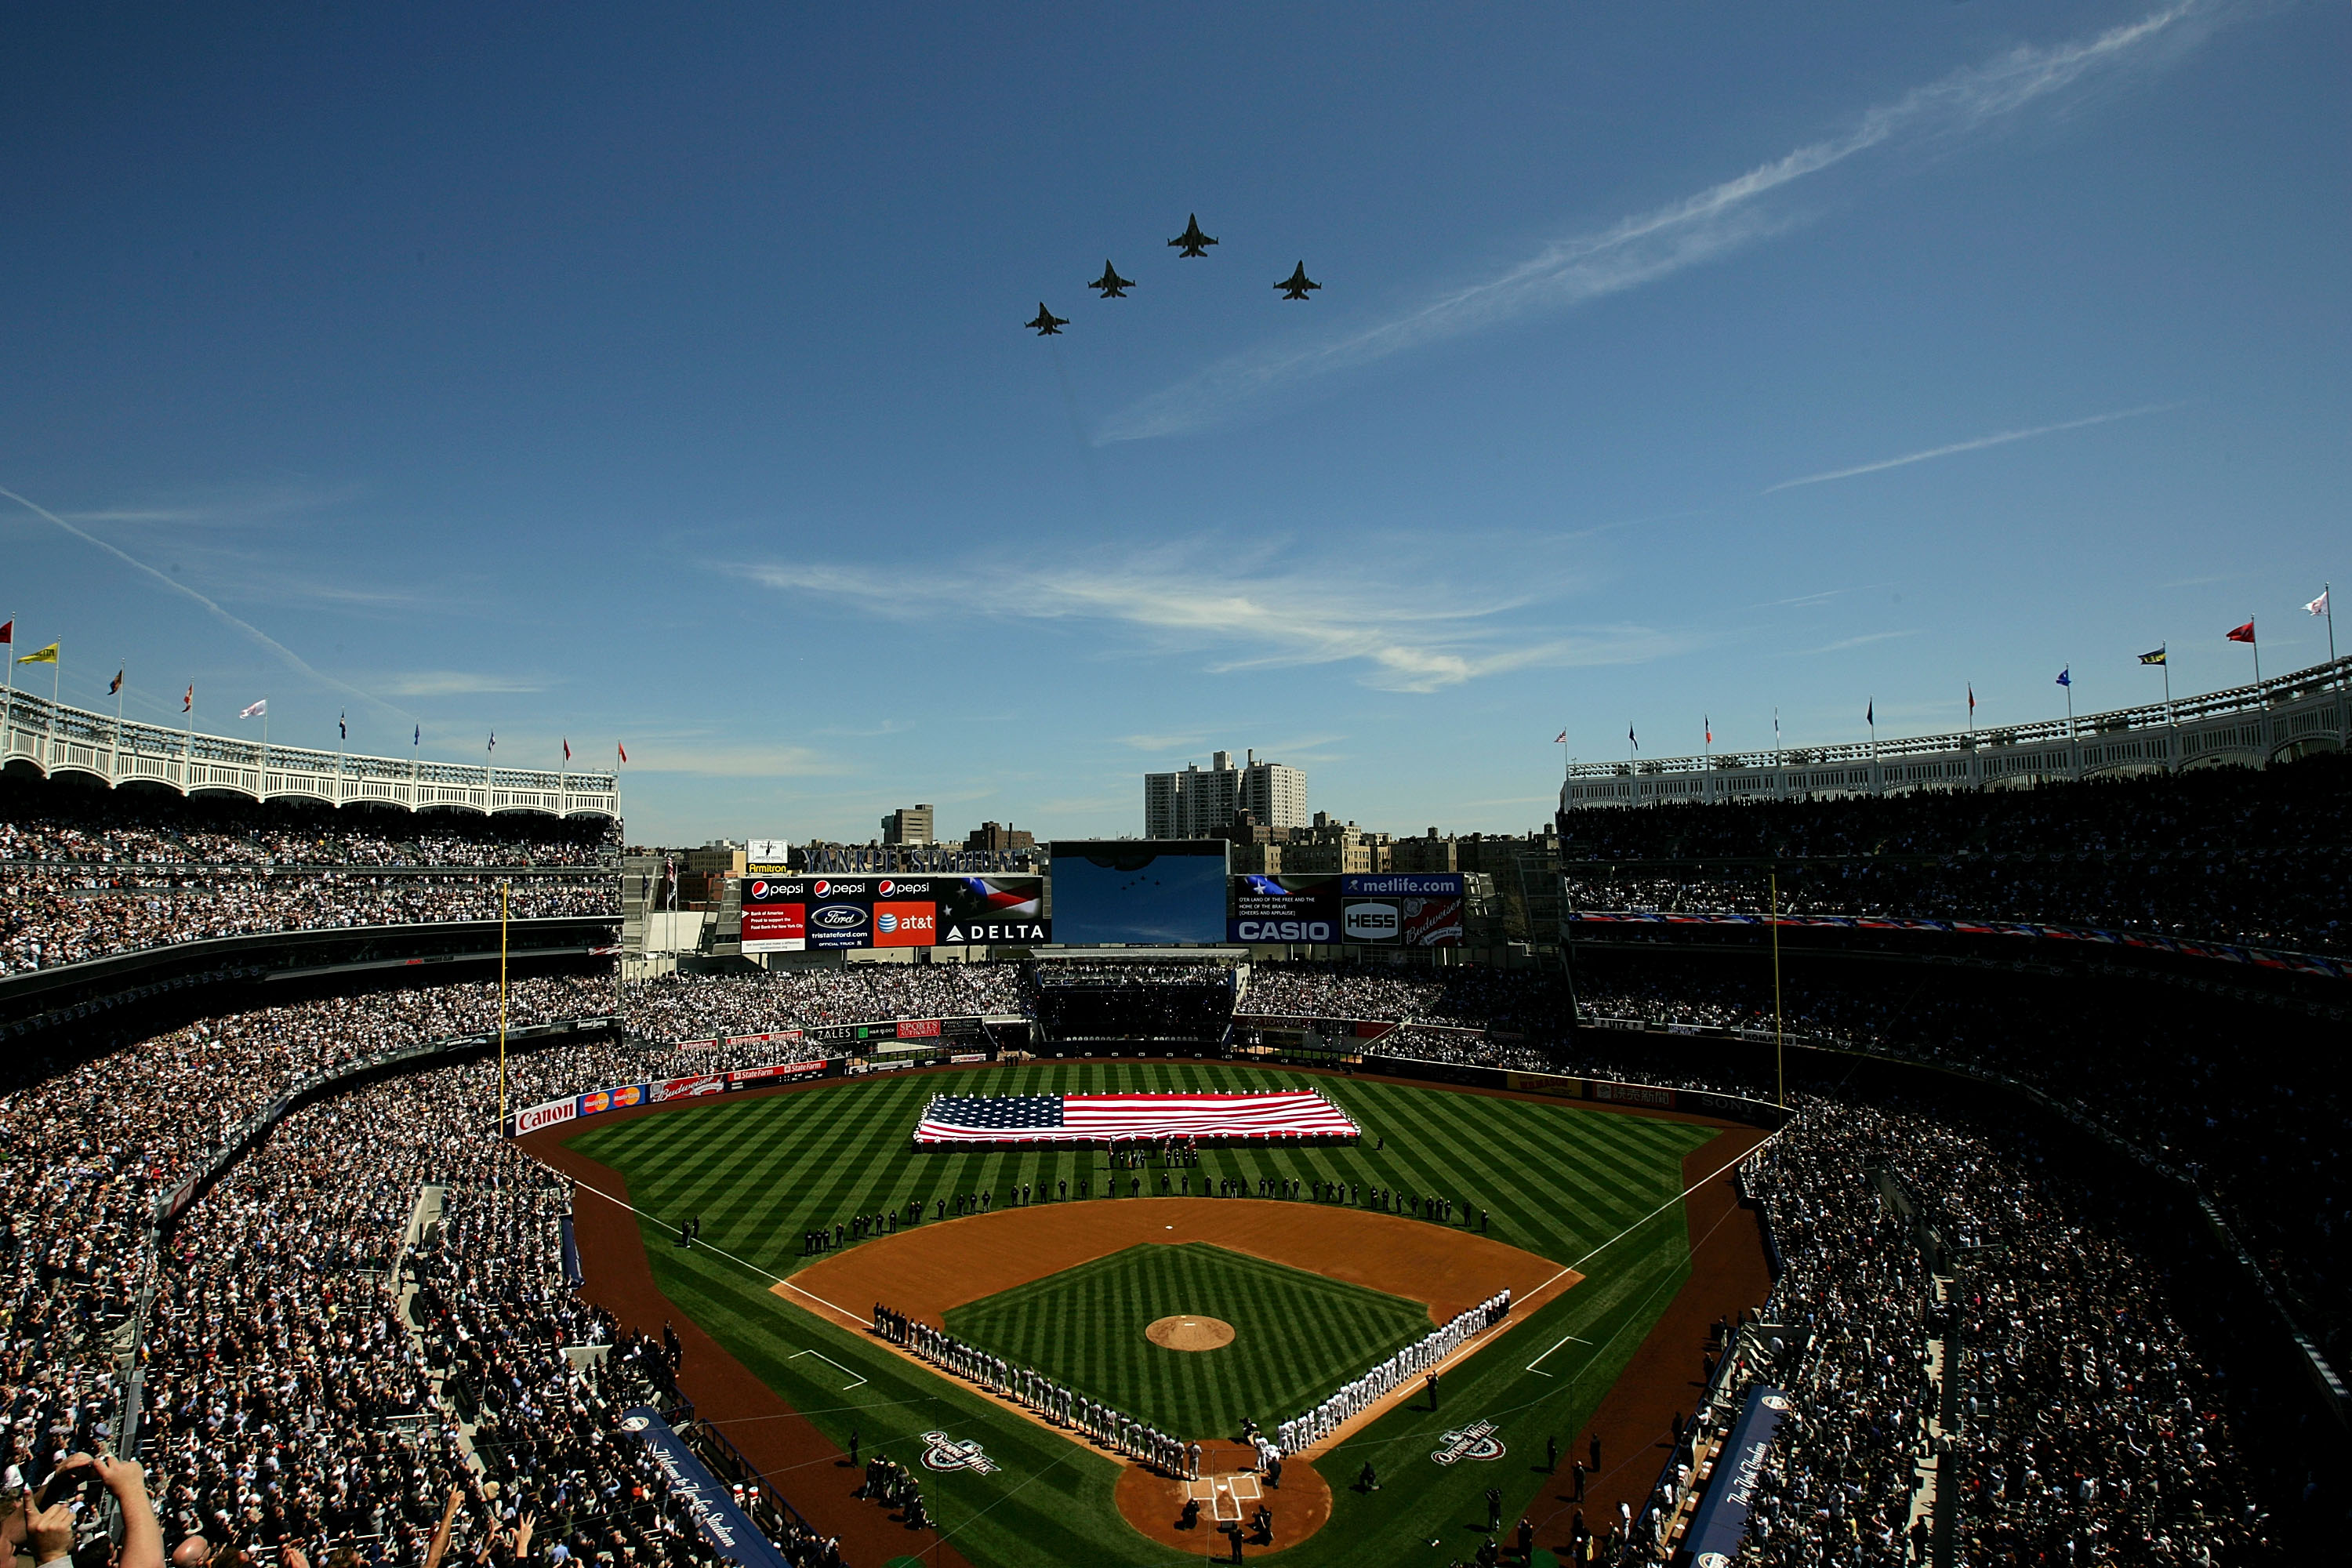 NEW YORK - APRIL 16:  Fighter jets fly over as recording artist Kelly Clarkson sings the National Anthem while members of the military hold a giant American flag before the opening day game between the Cleveland Indians and the New York Yankees at the new